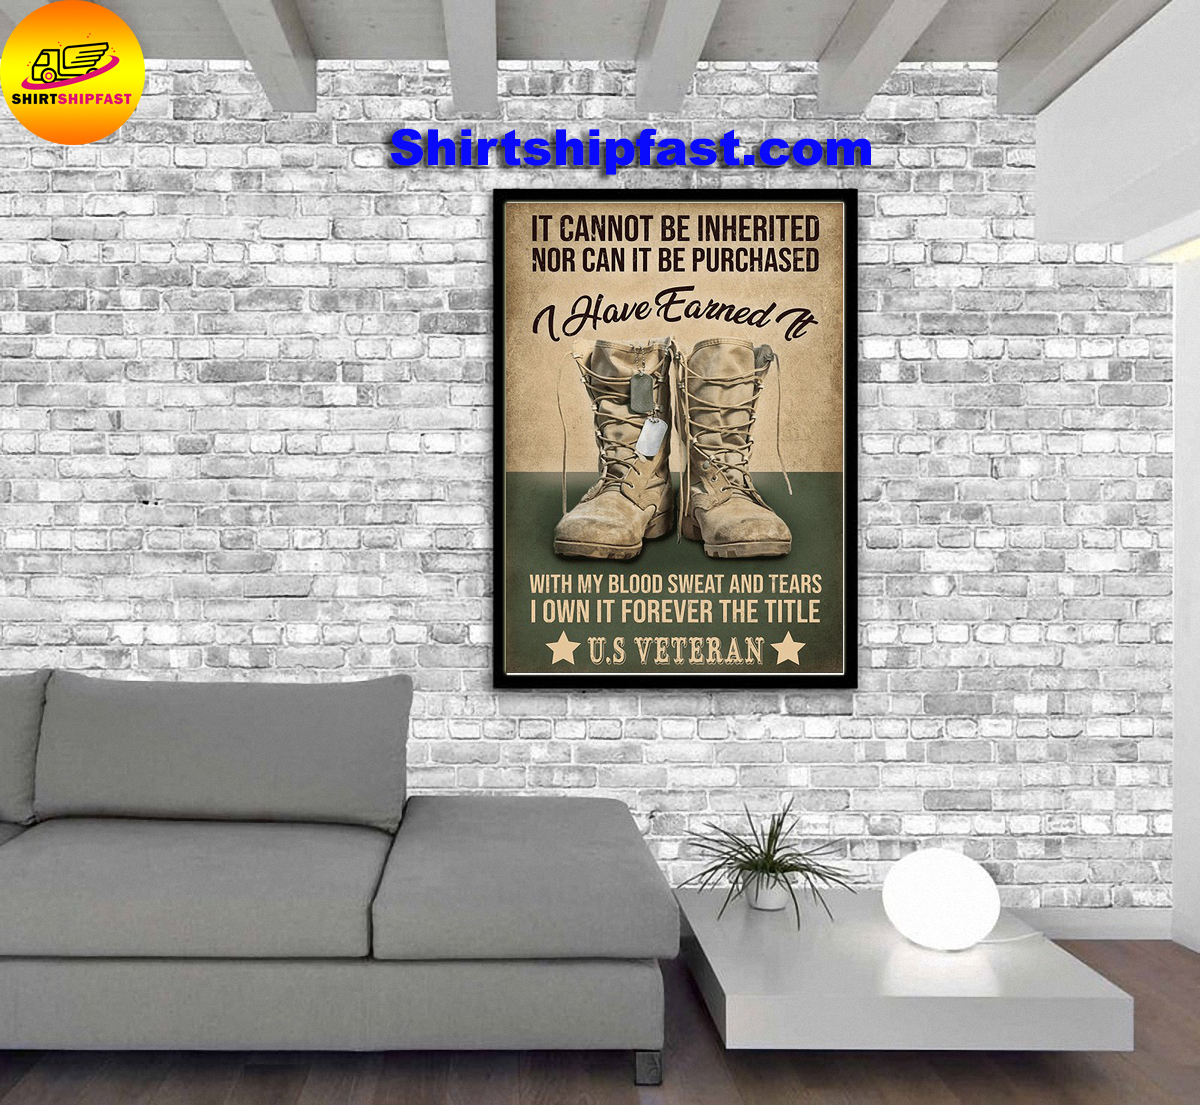 US veteran It cannot be inherited nor can it be purchased canvas